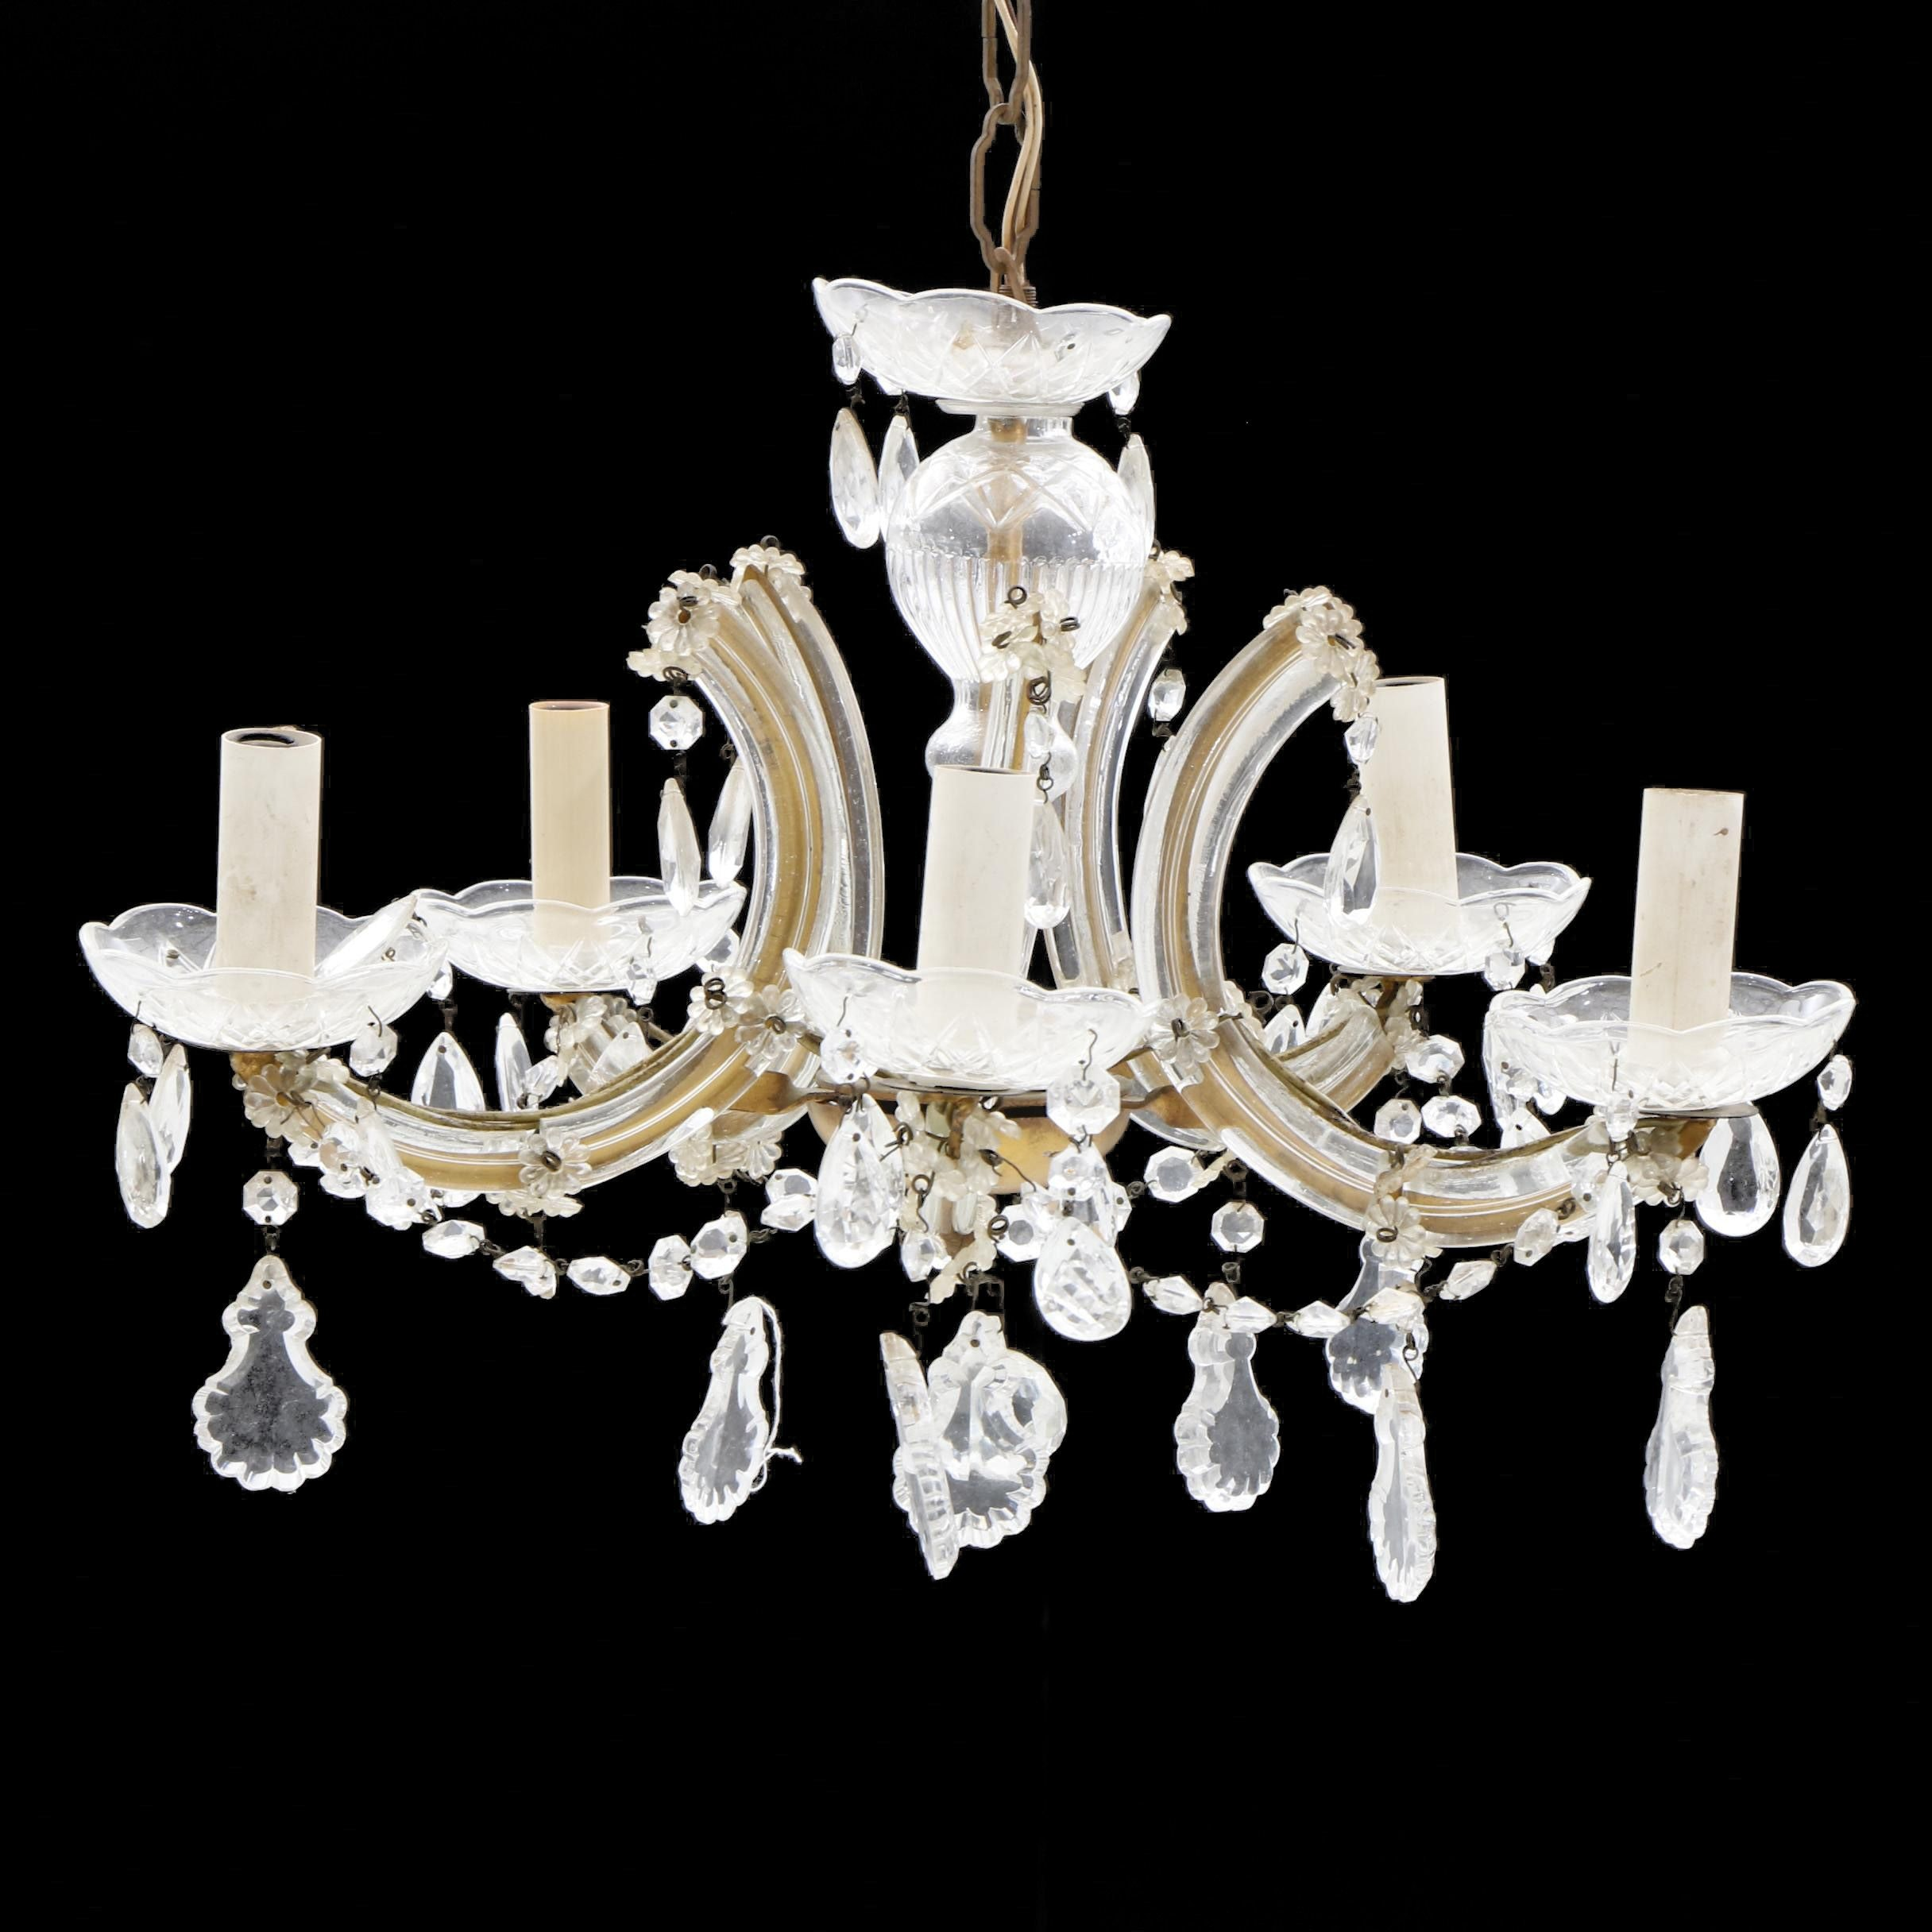 Glass Cased Five-Arm Chandelier with Prisms